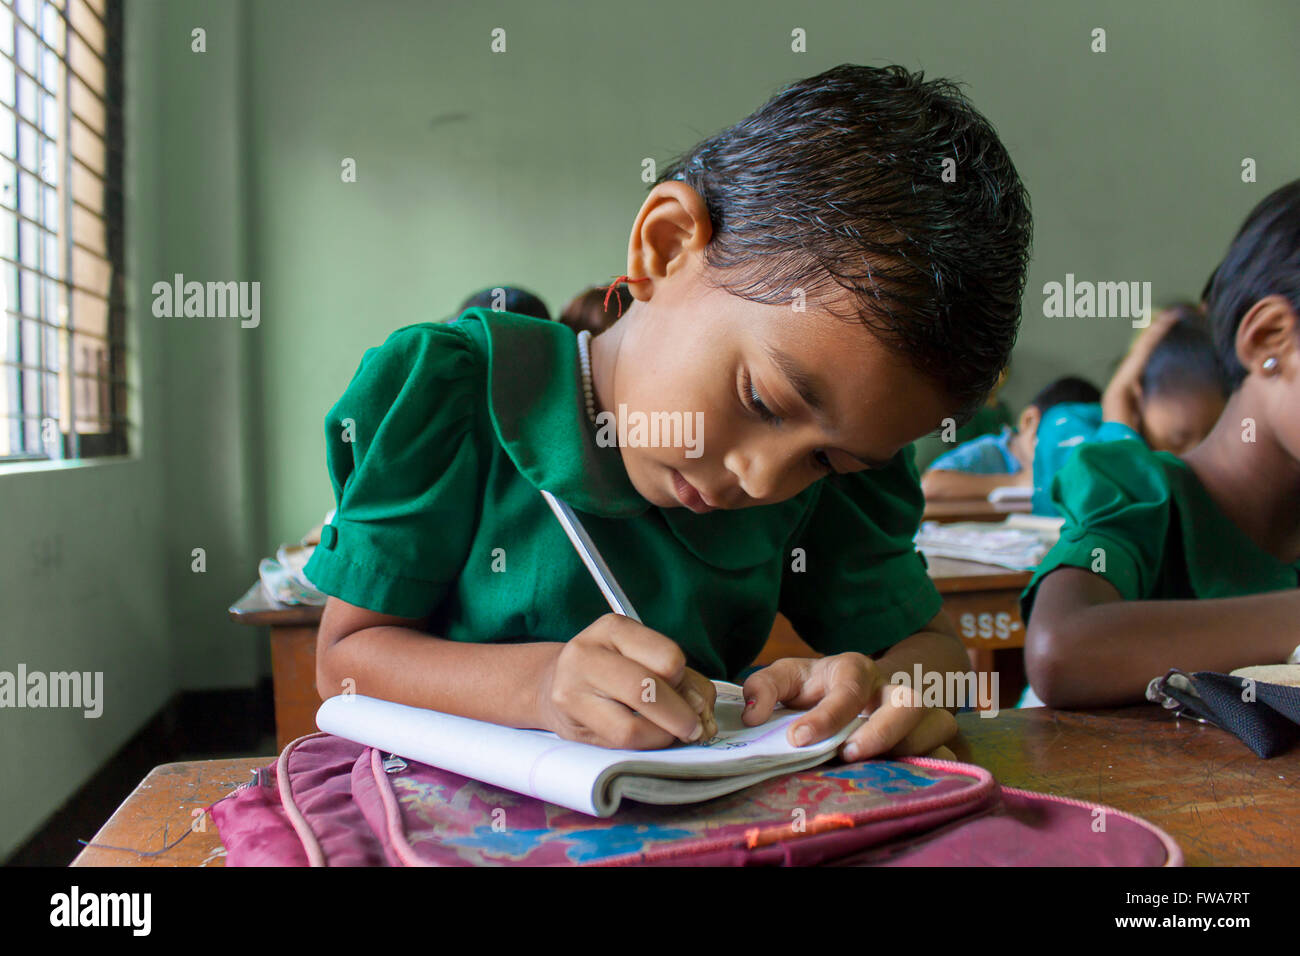 A little Girl writing rural primary school classroom in SSS (Society for Social Service) Center, Tangail, Dhaka - Stock Image